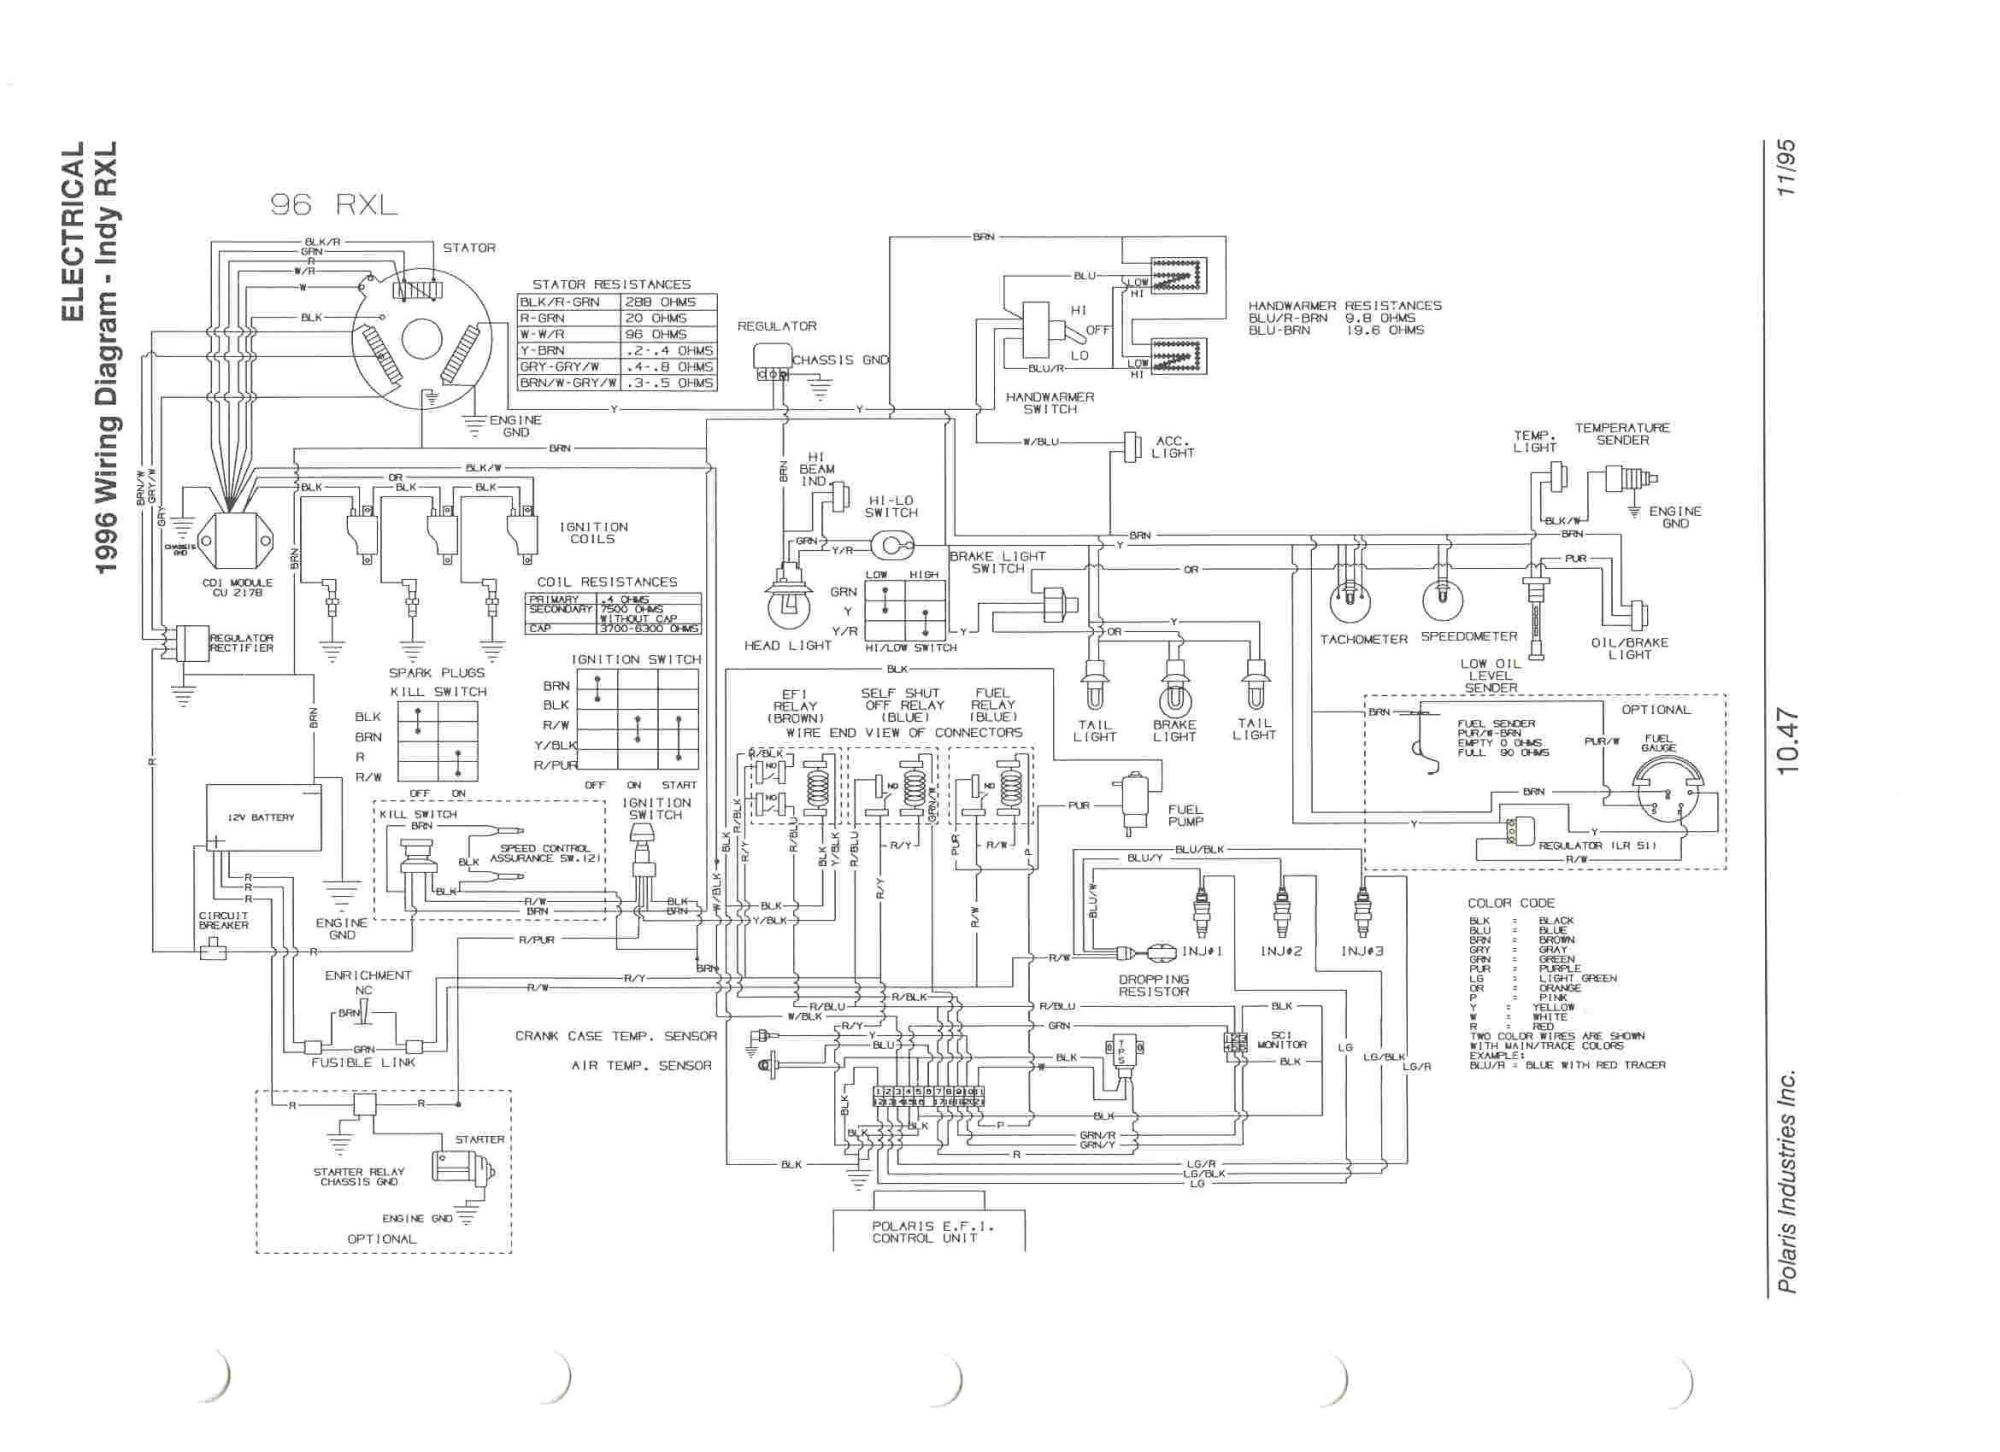 hight resolution of wiring diagram for 1991 polaris rxl printable wiring diagram wiring diagram for 1991 polaris rxl